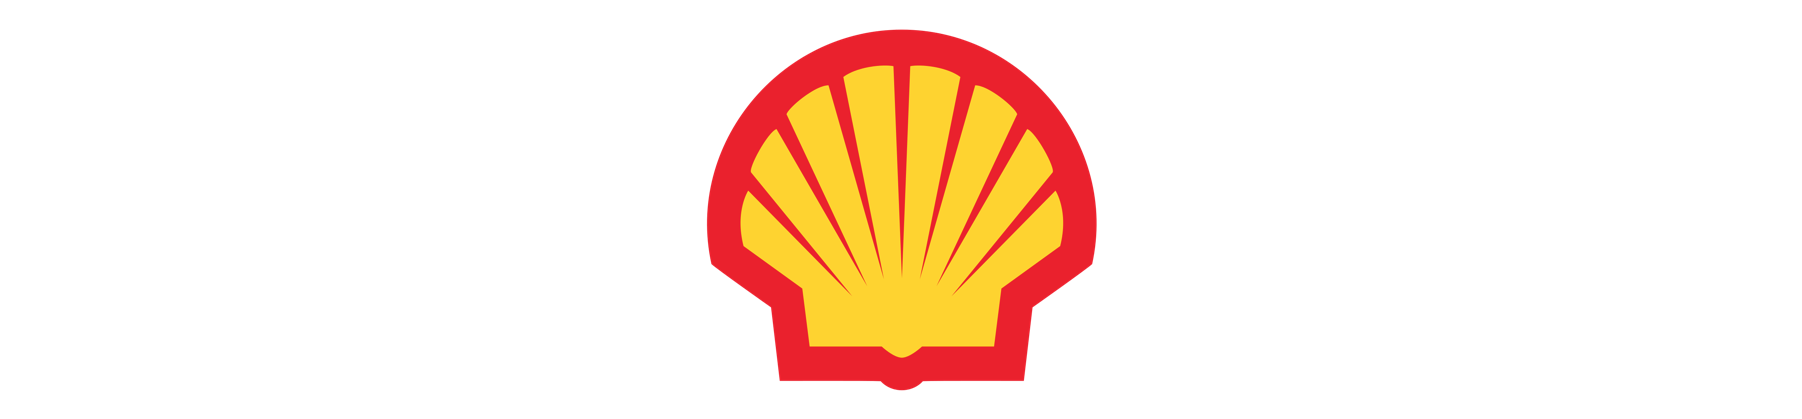 shell logo for website banner.png